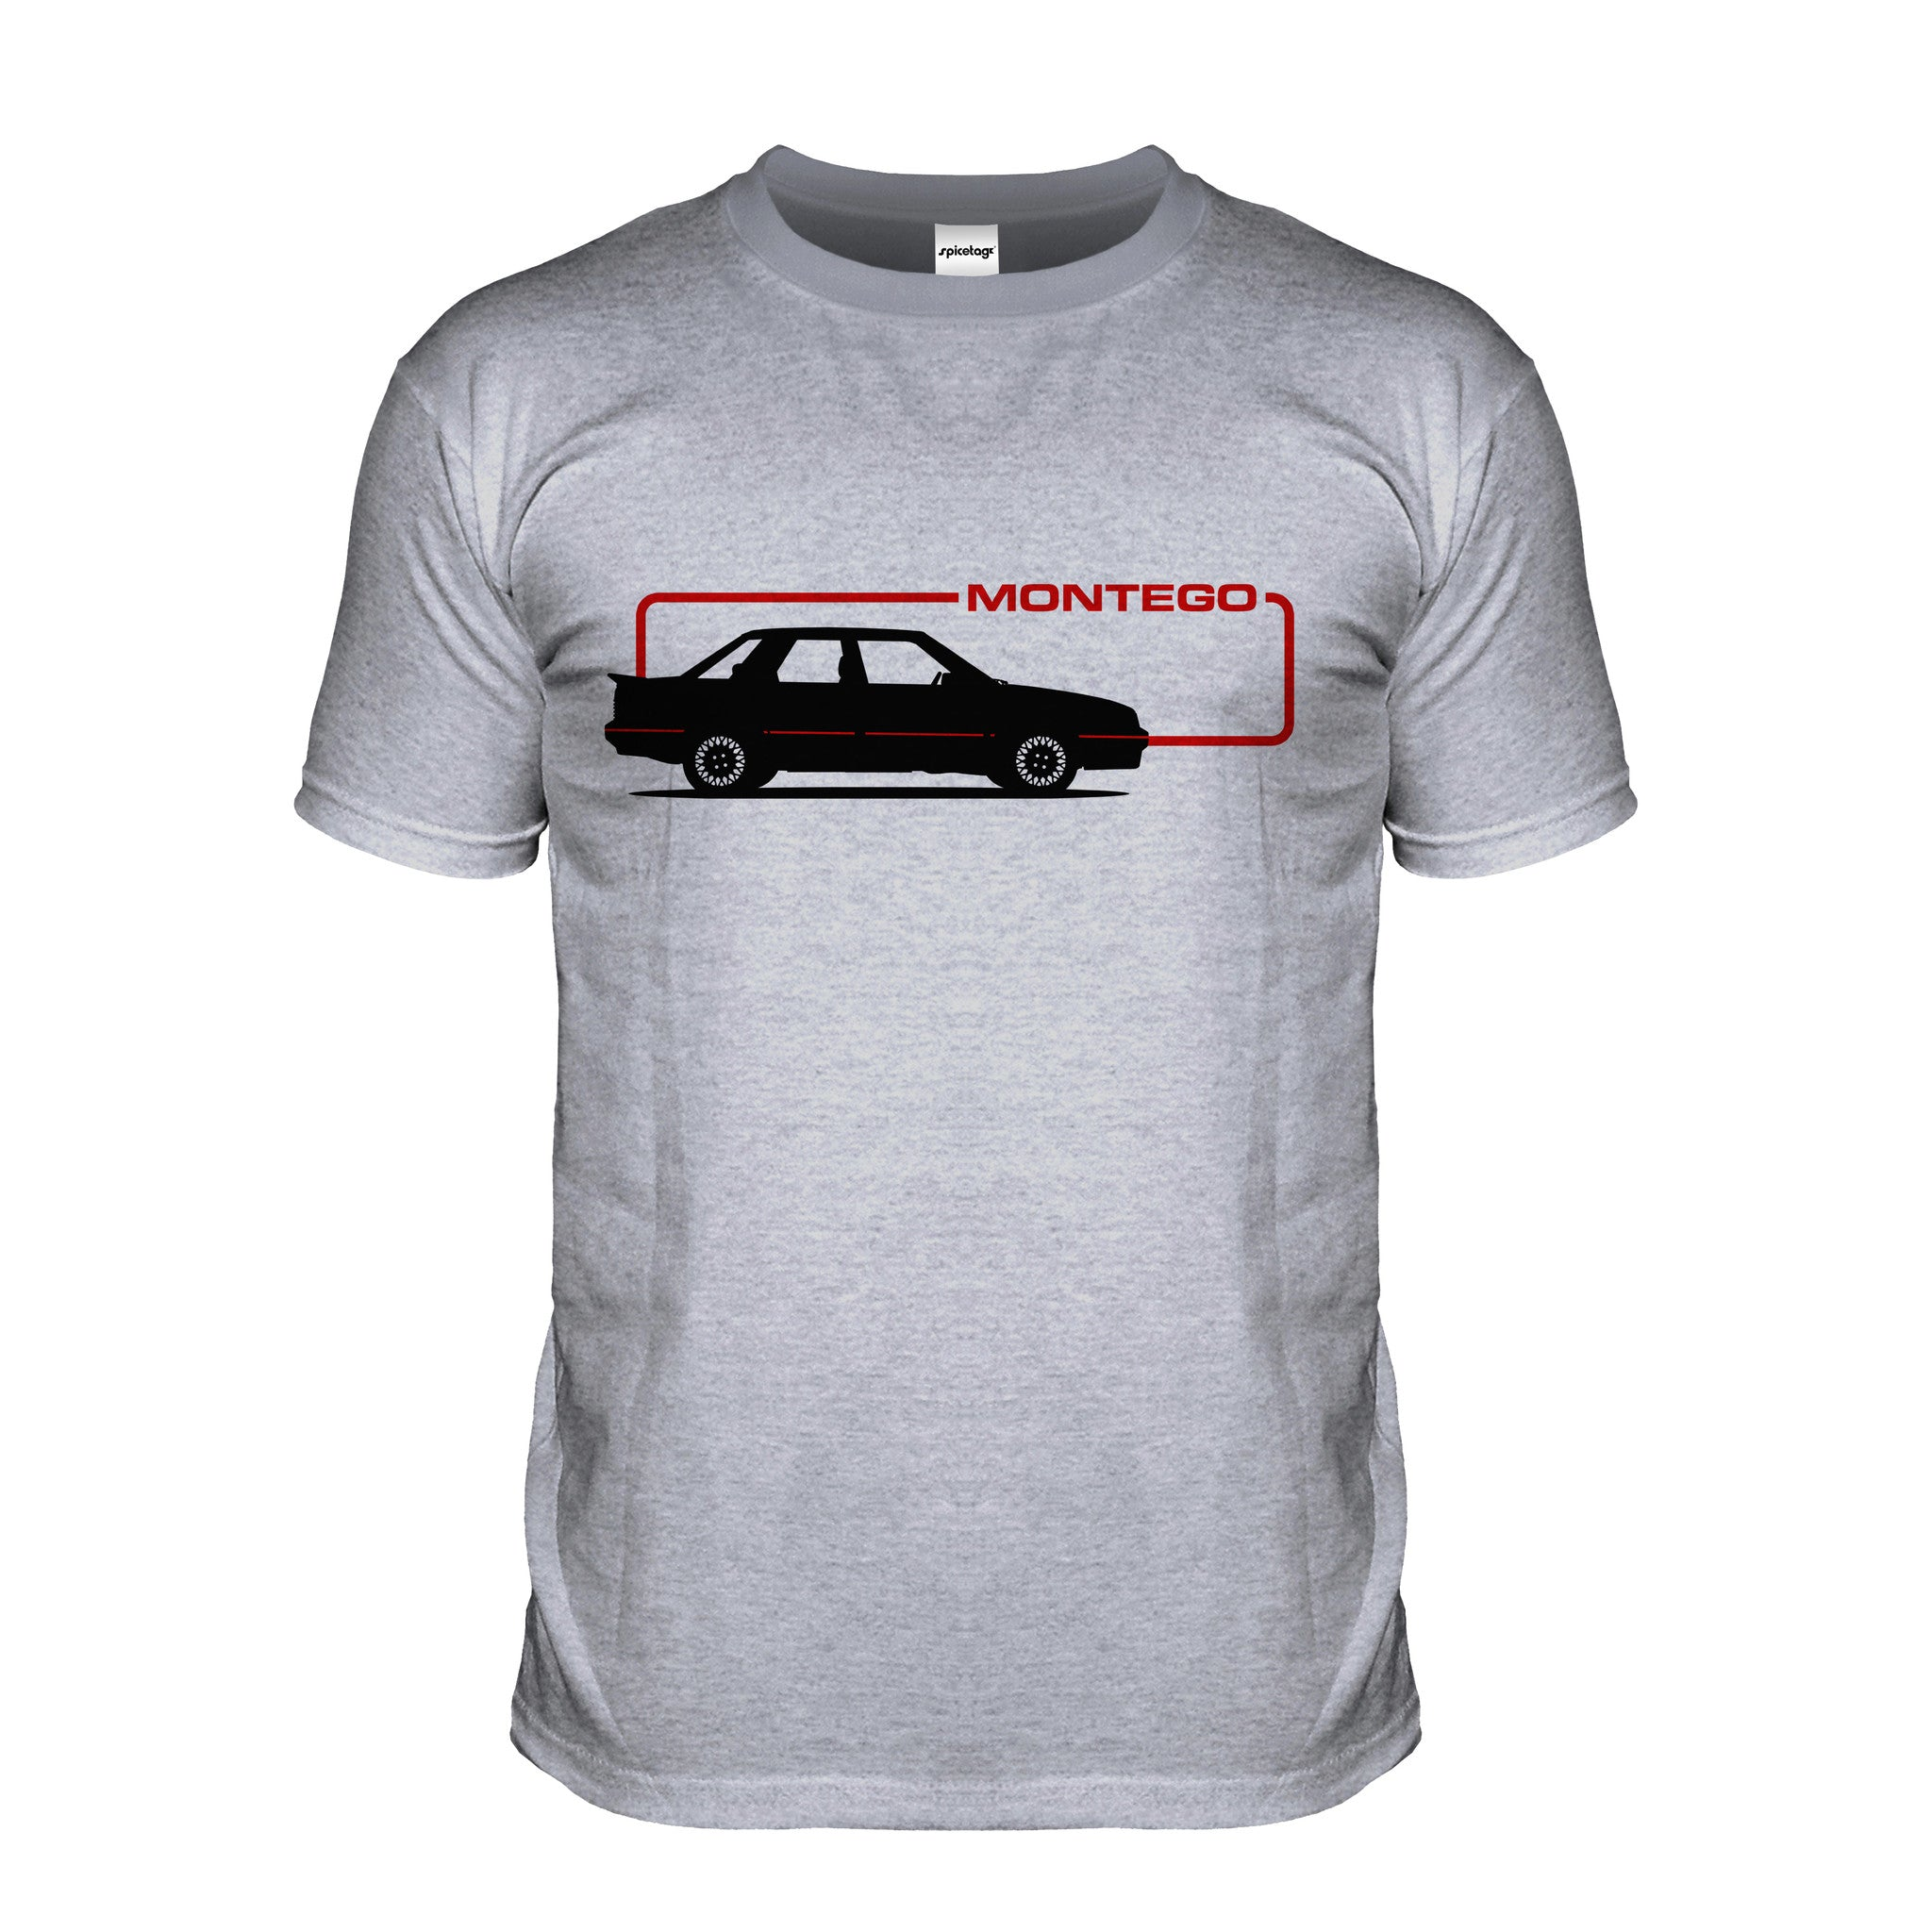 Montego Turbo Car T-shirt